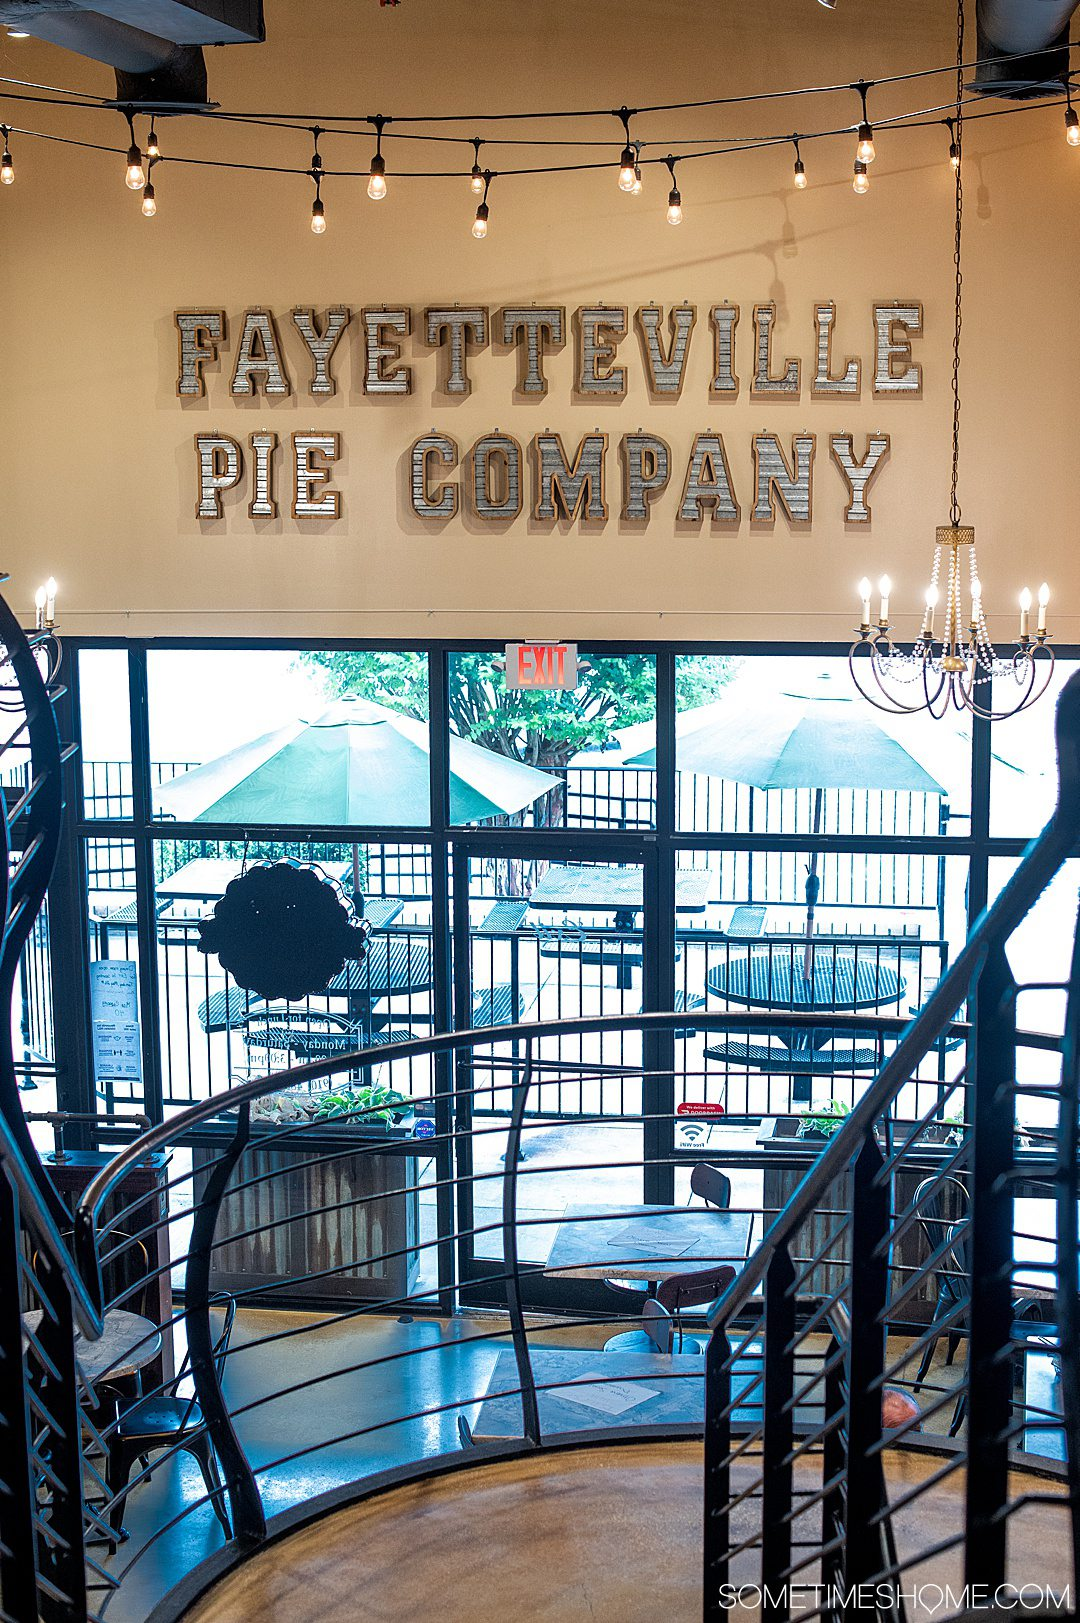 Interior view of the two-story Fayetteville Pie Company in North Carolina.